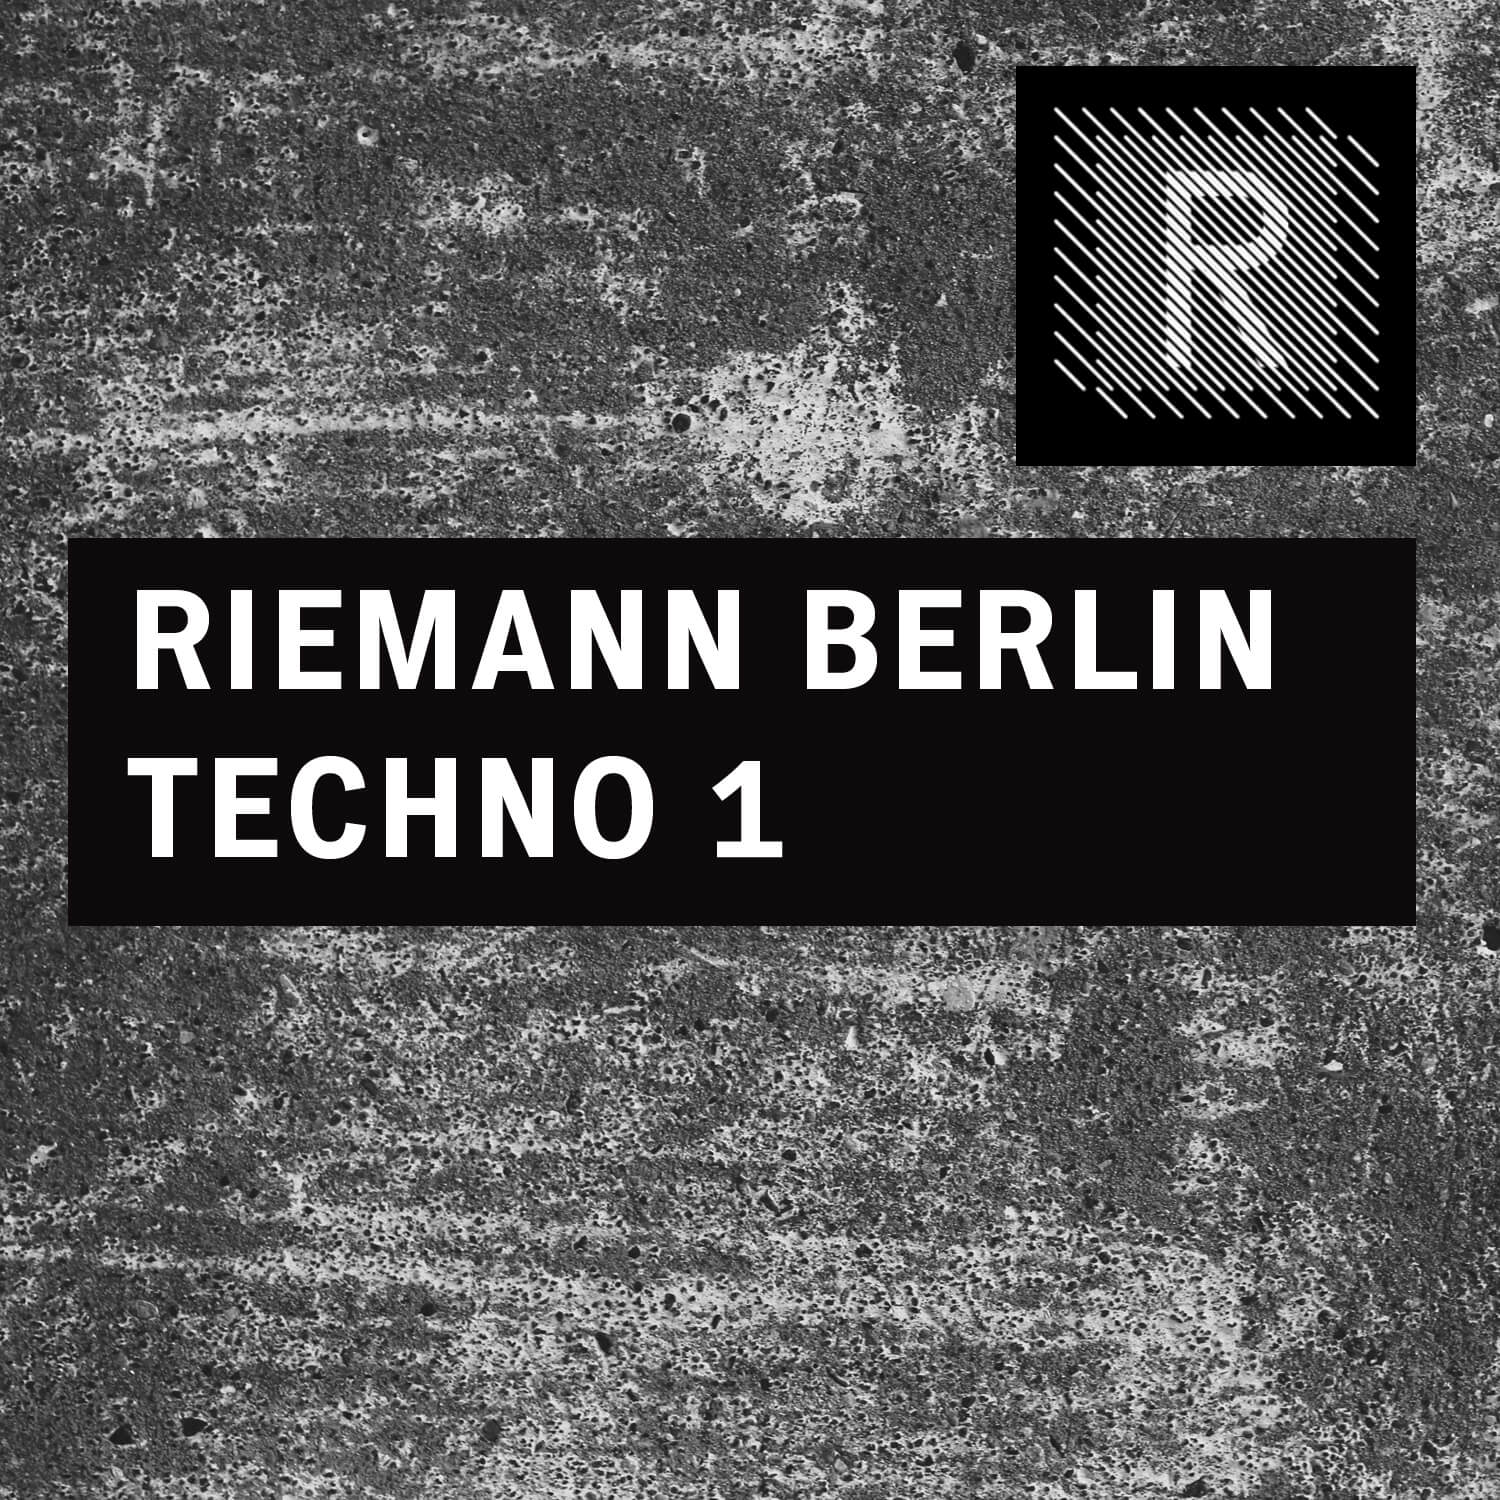 Riemann – Berlin Techno 1